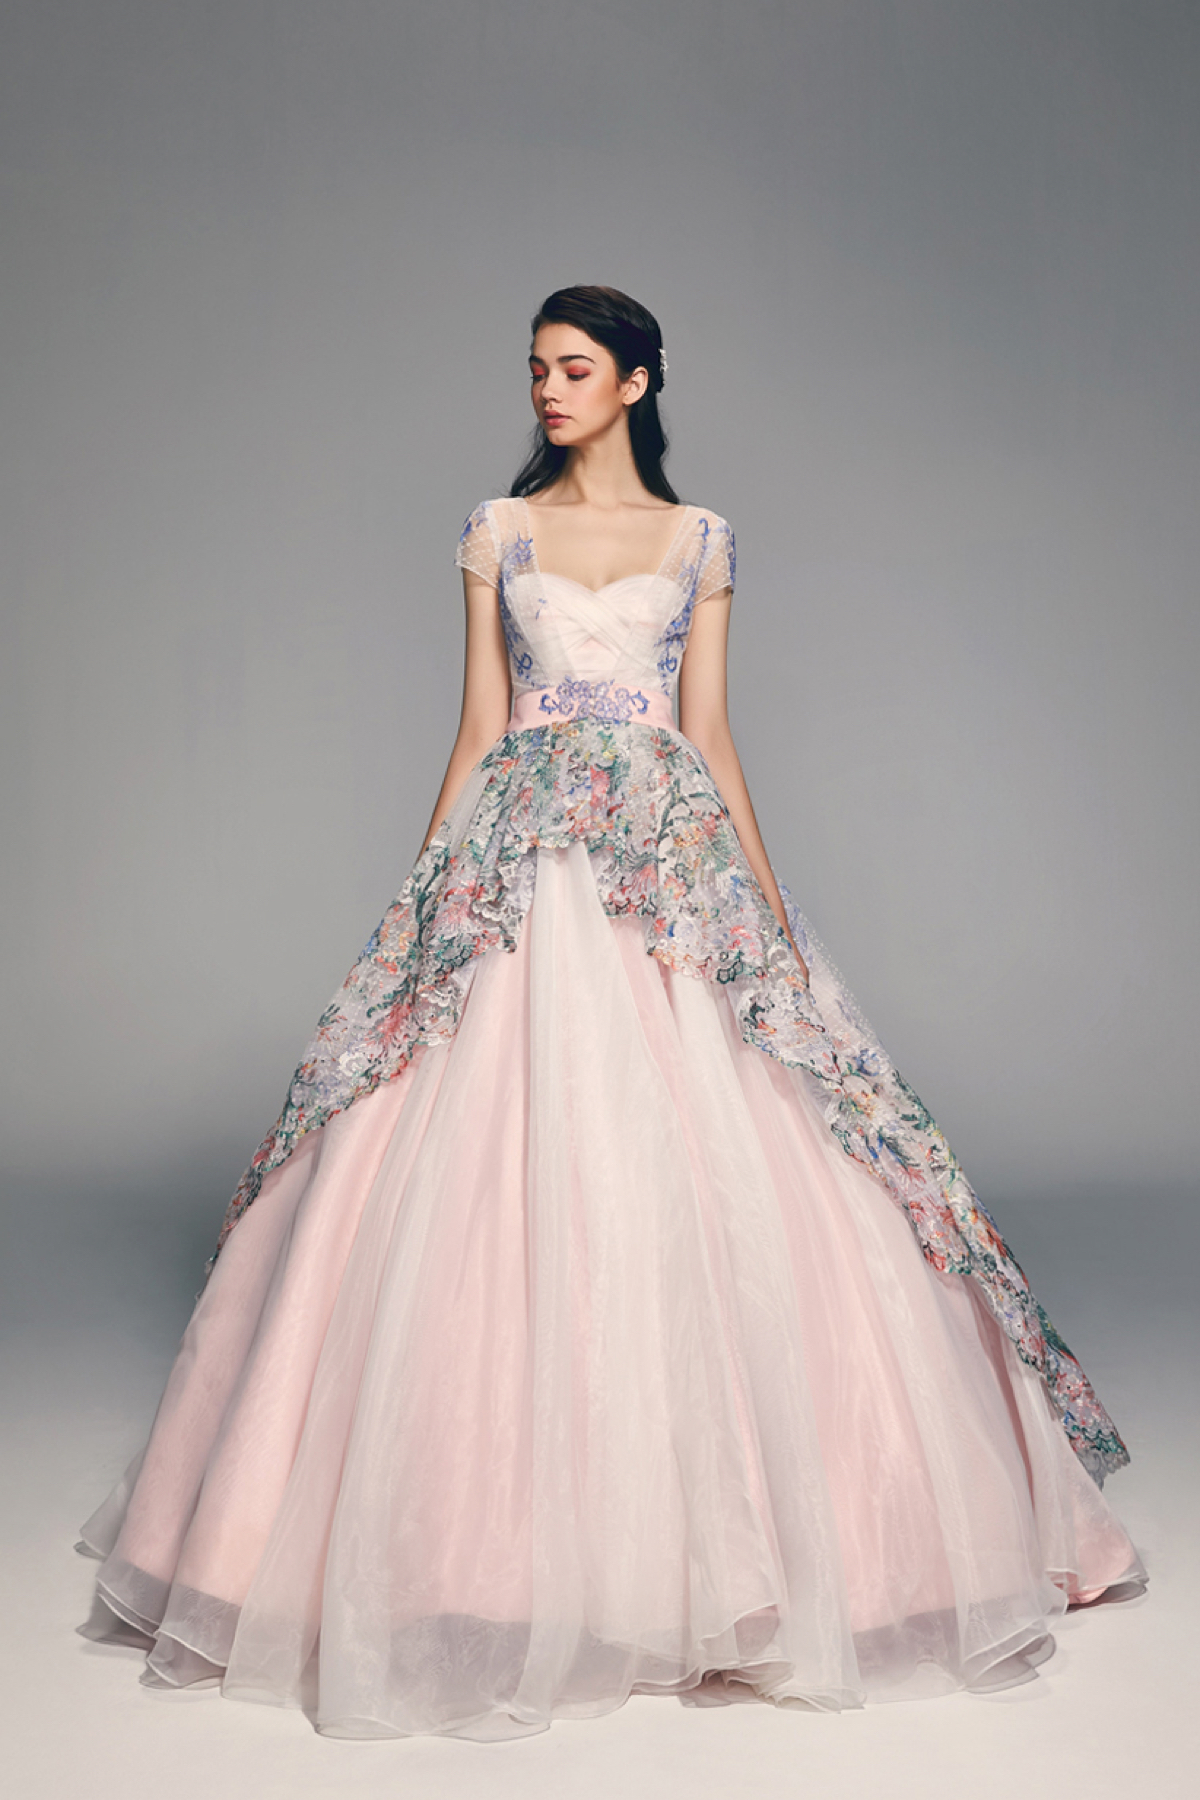 17 Inspiring and Trending Wedding Gowns For Spring Summer 2018 60127ed52908